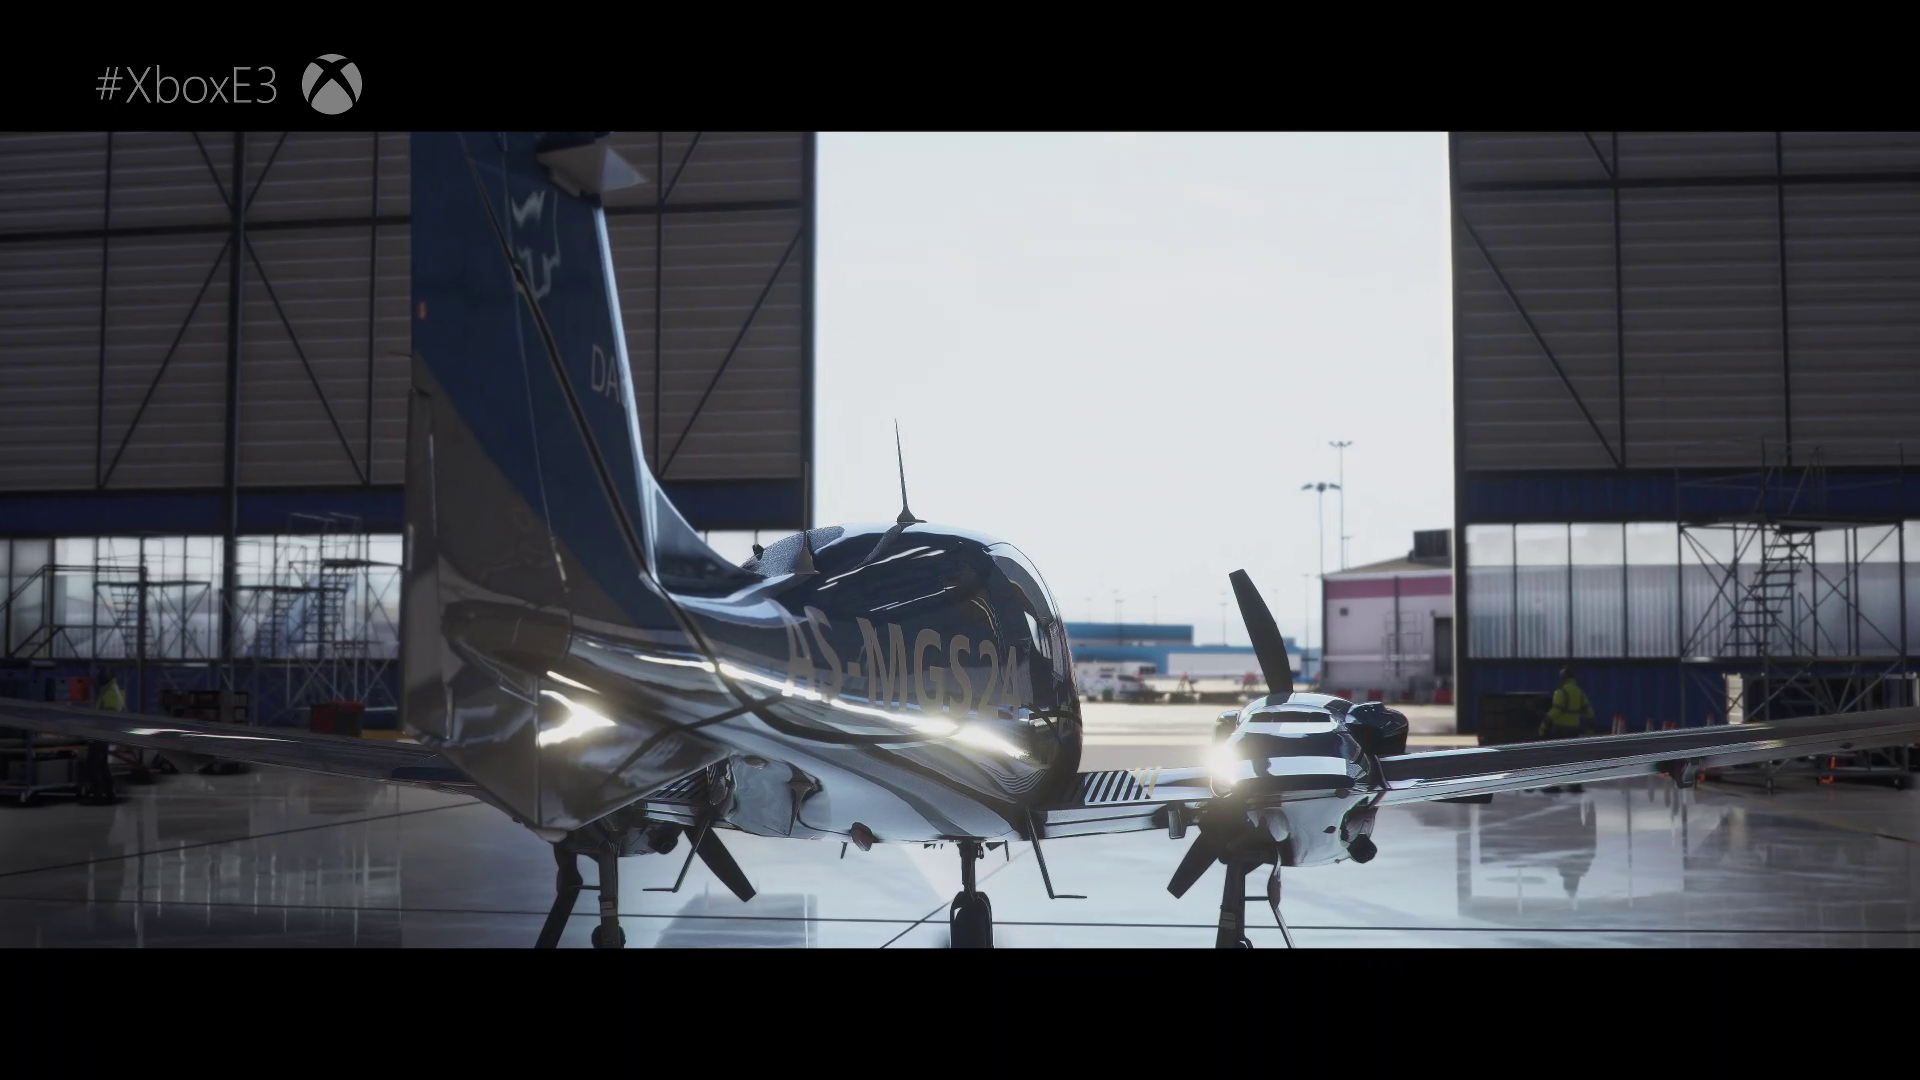 A new Microsoft Flight Simulator is coming to PC and Xbox One